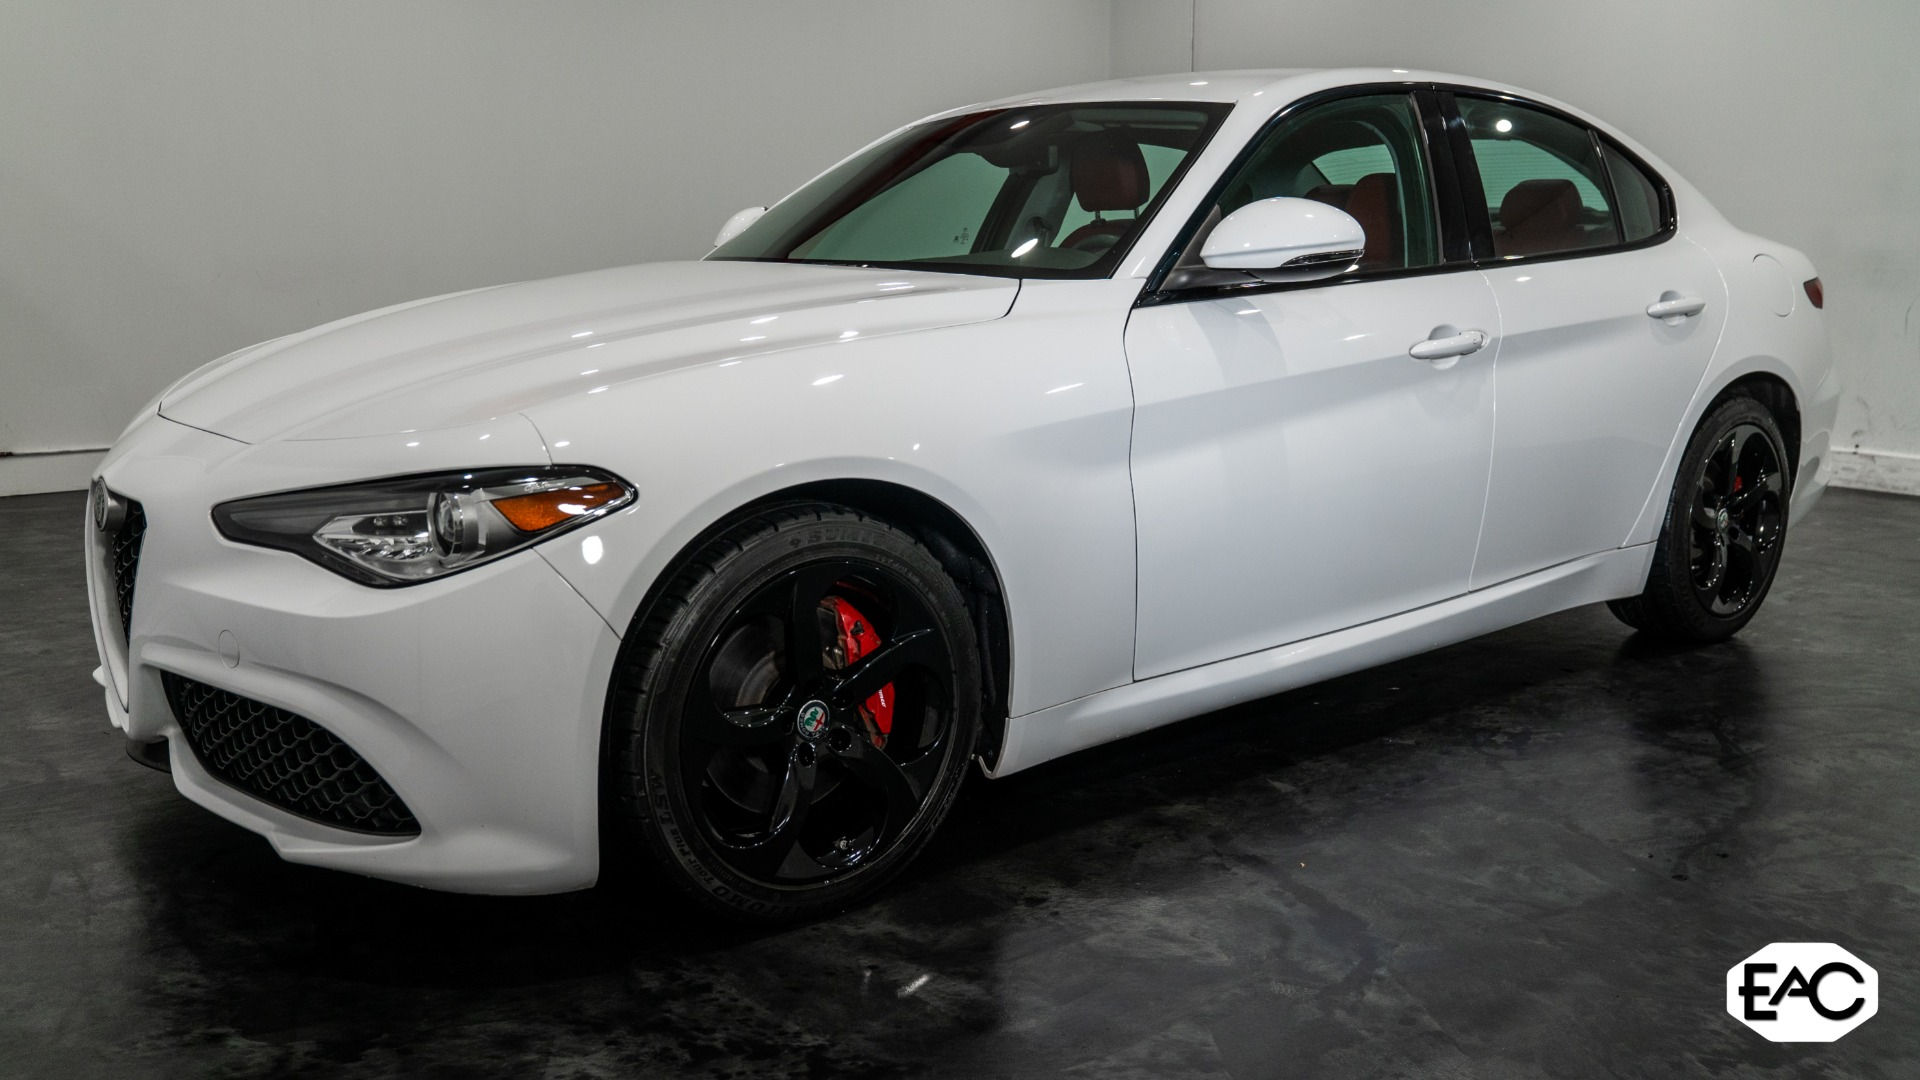 Used 2017 Alfa Romeo Giulia for sale Sold at Empire Auto Collection in Warren MI 48091 1